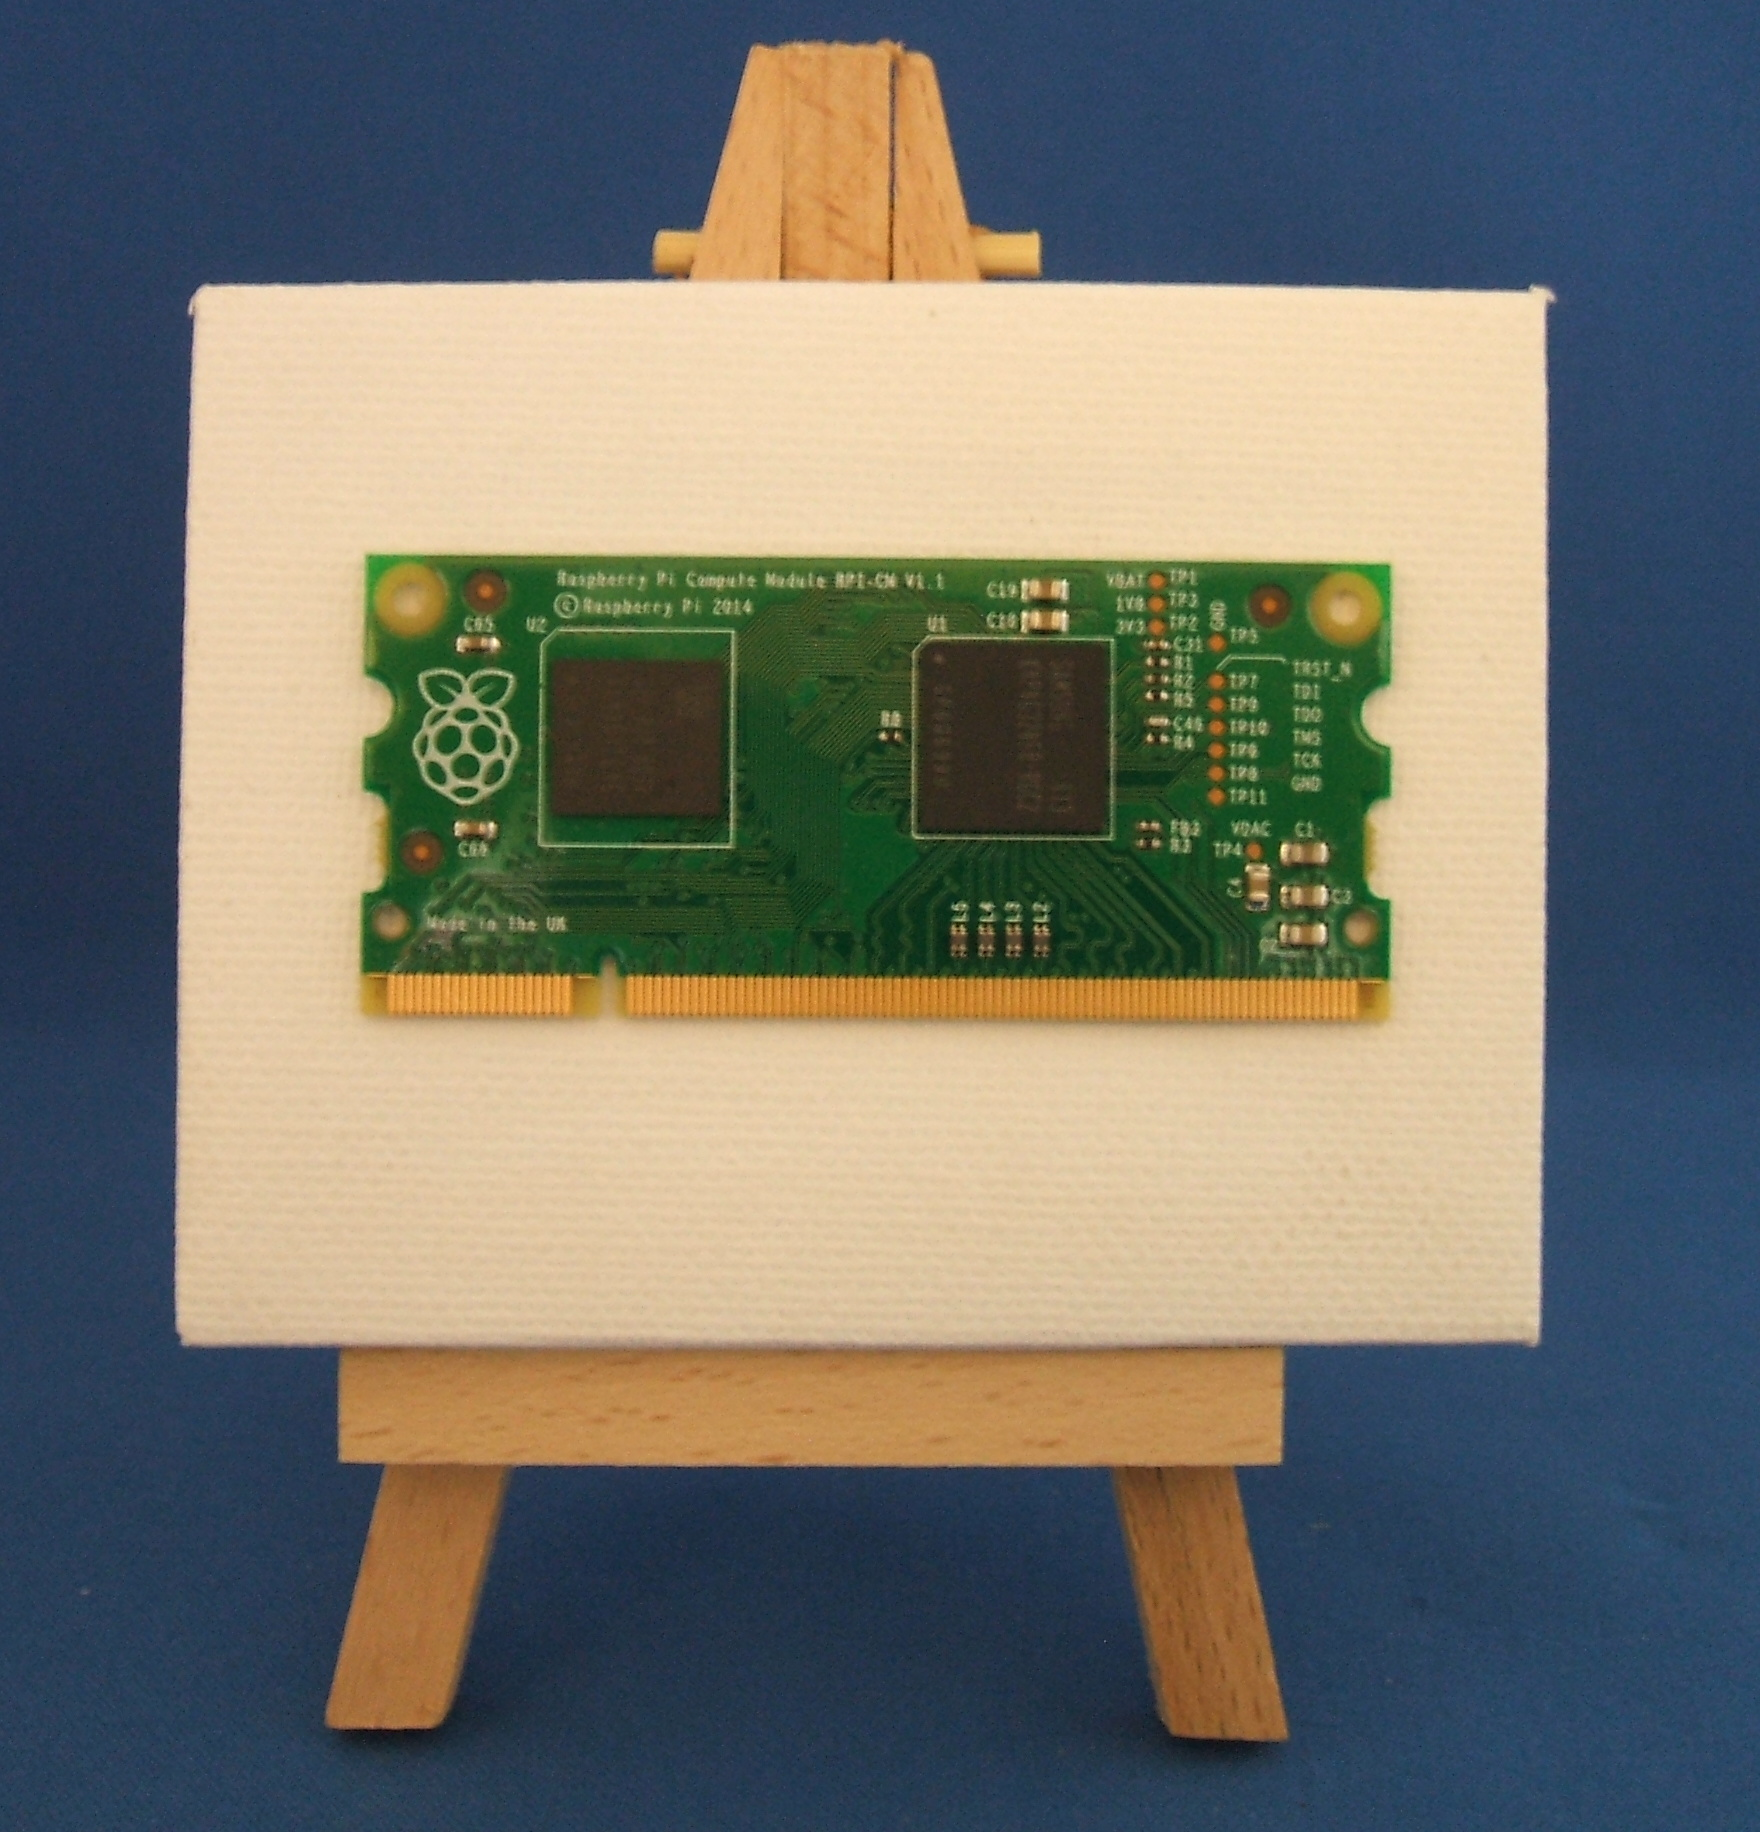 Pi Compute Module on an Easel